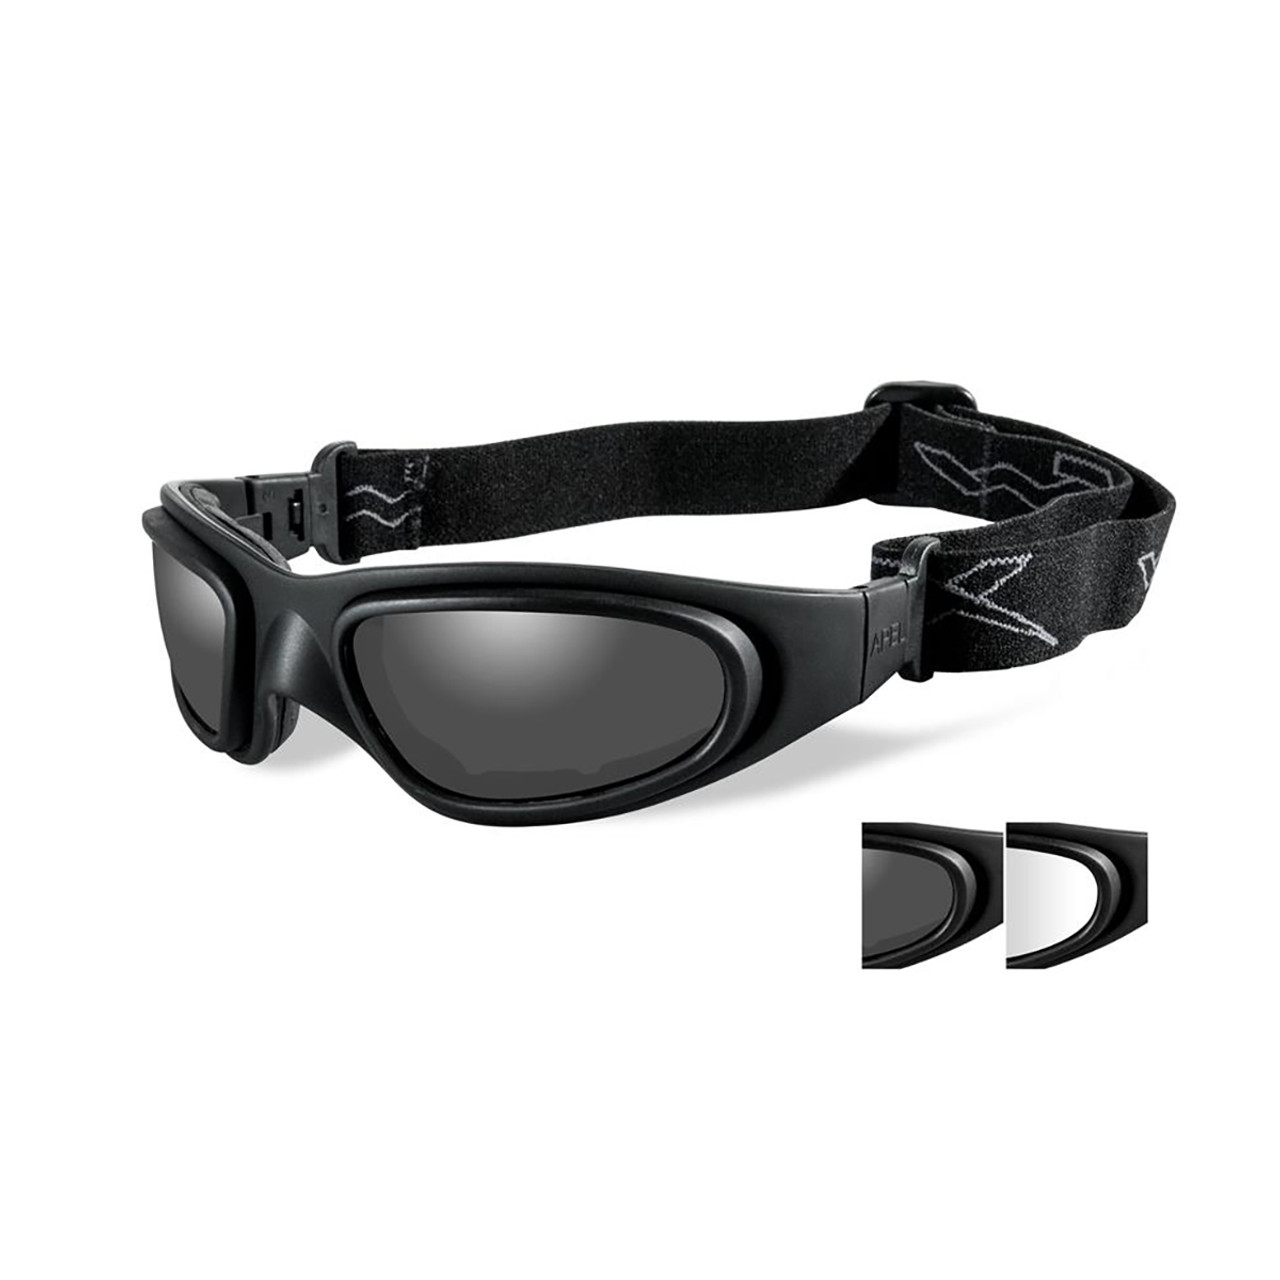 bf05d1175115 Wiley X SG-1-71 Grey/Clear Lenses Matte Black Frame Tactical Goggles | Free  Shipping on All Orders